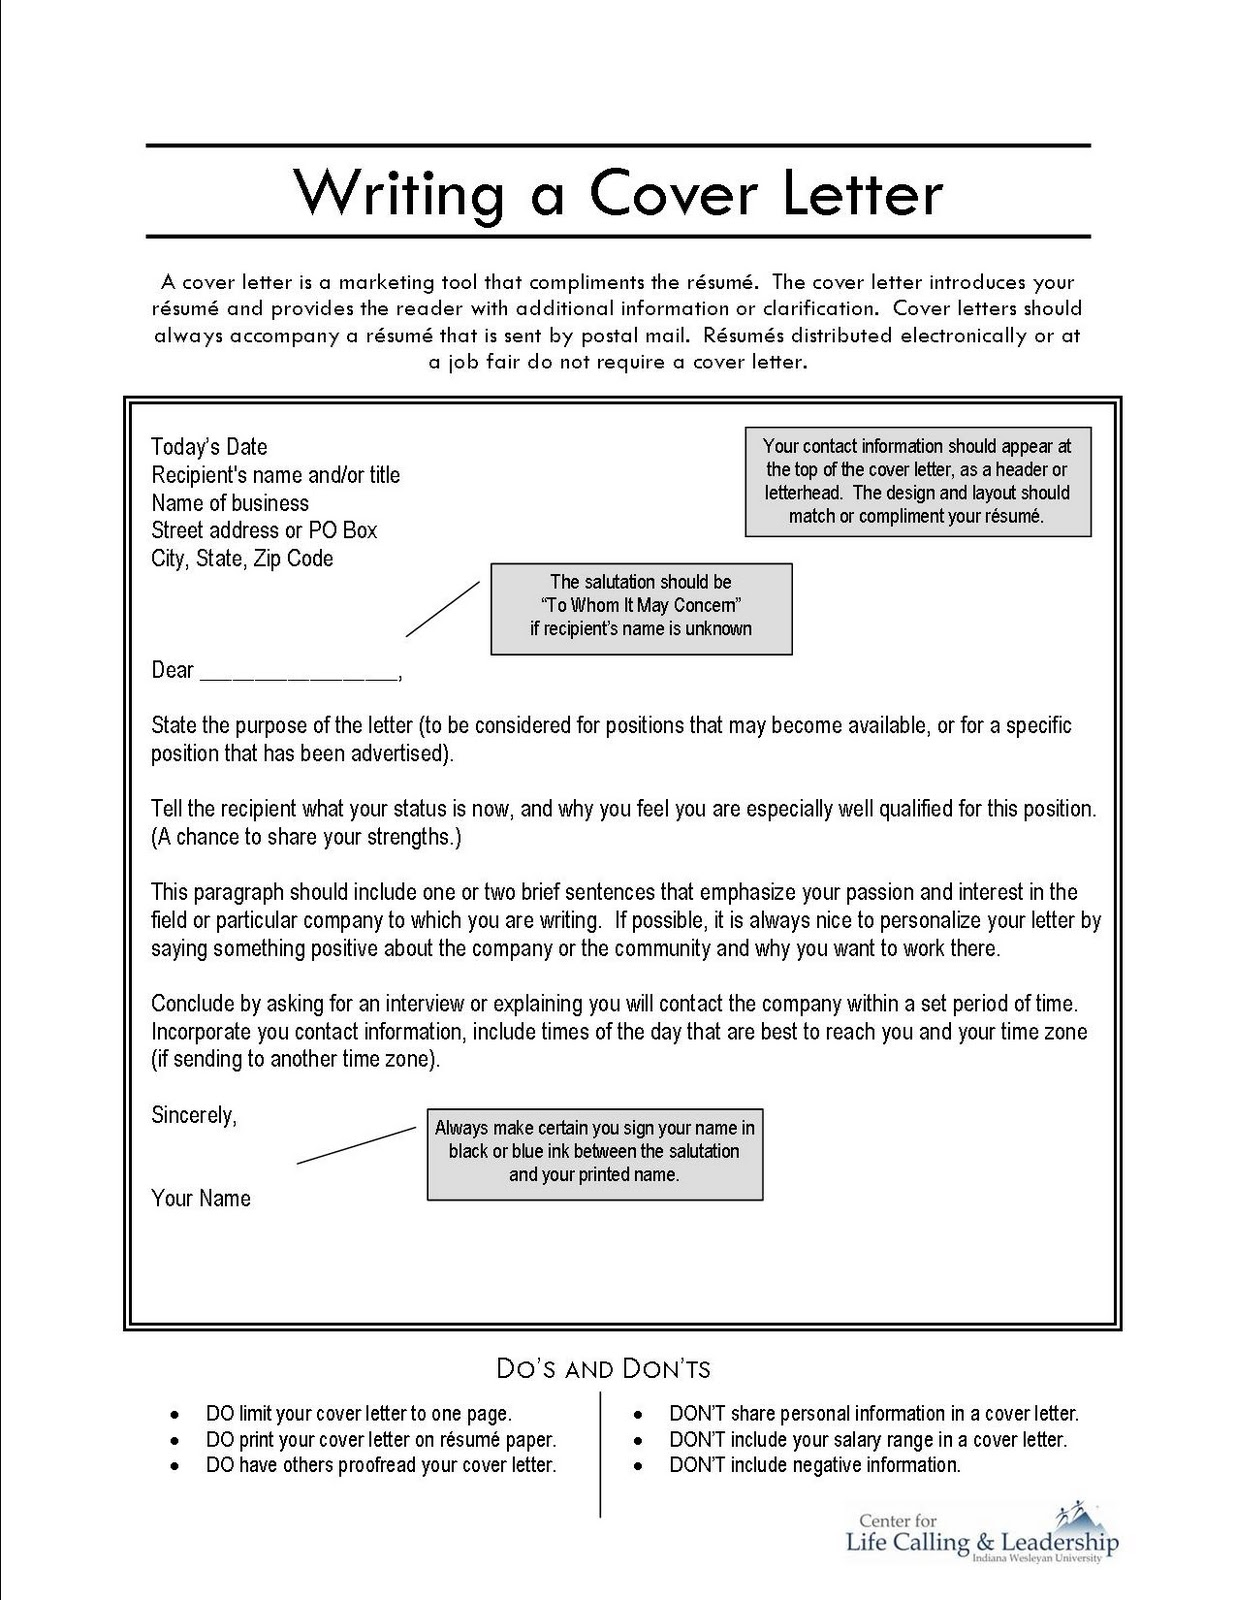 resume and cover letter services toronto aploon resume and cover letter services toronto aploon